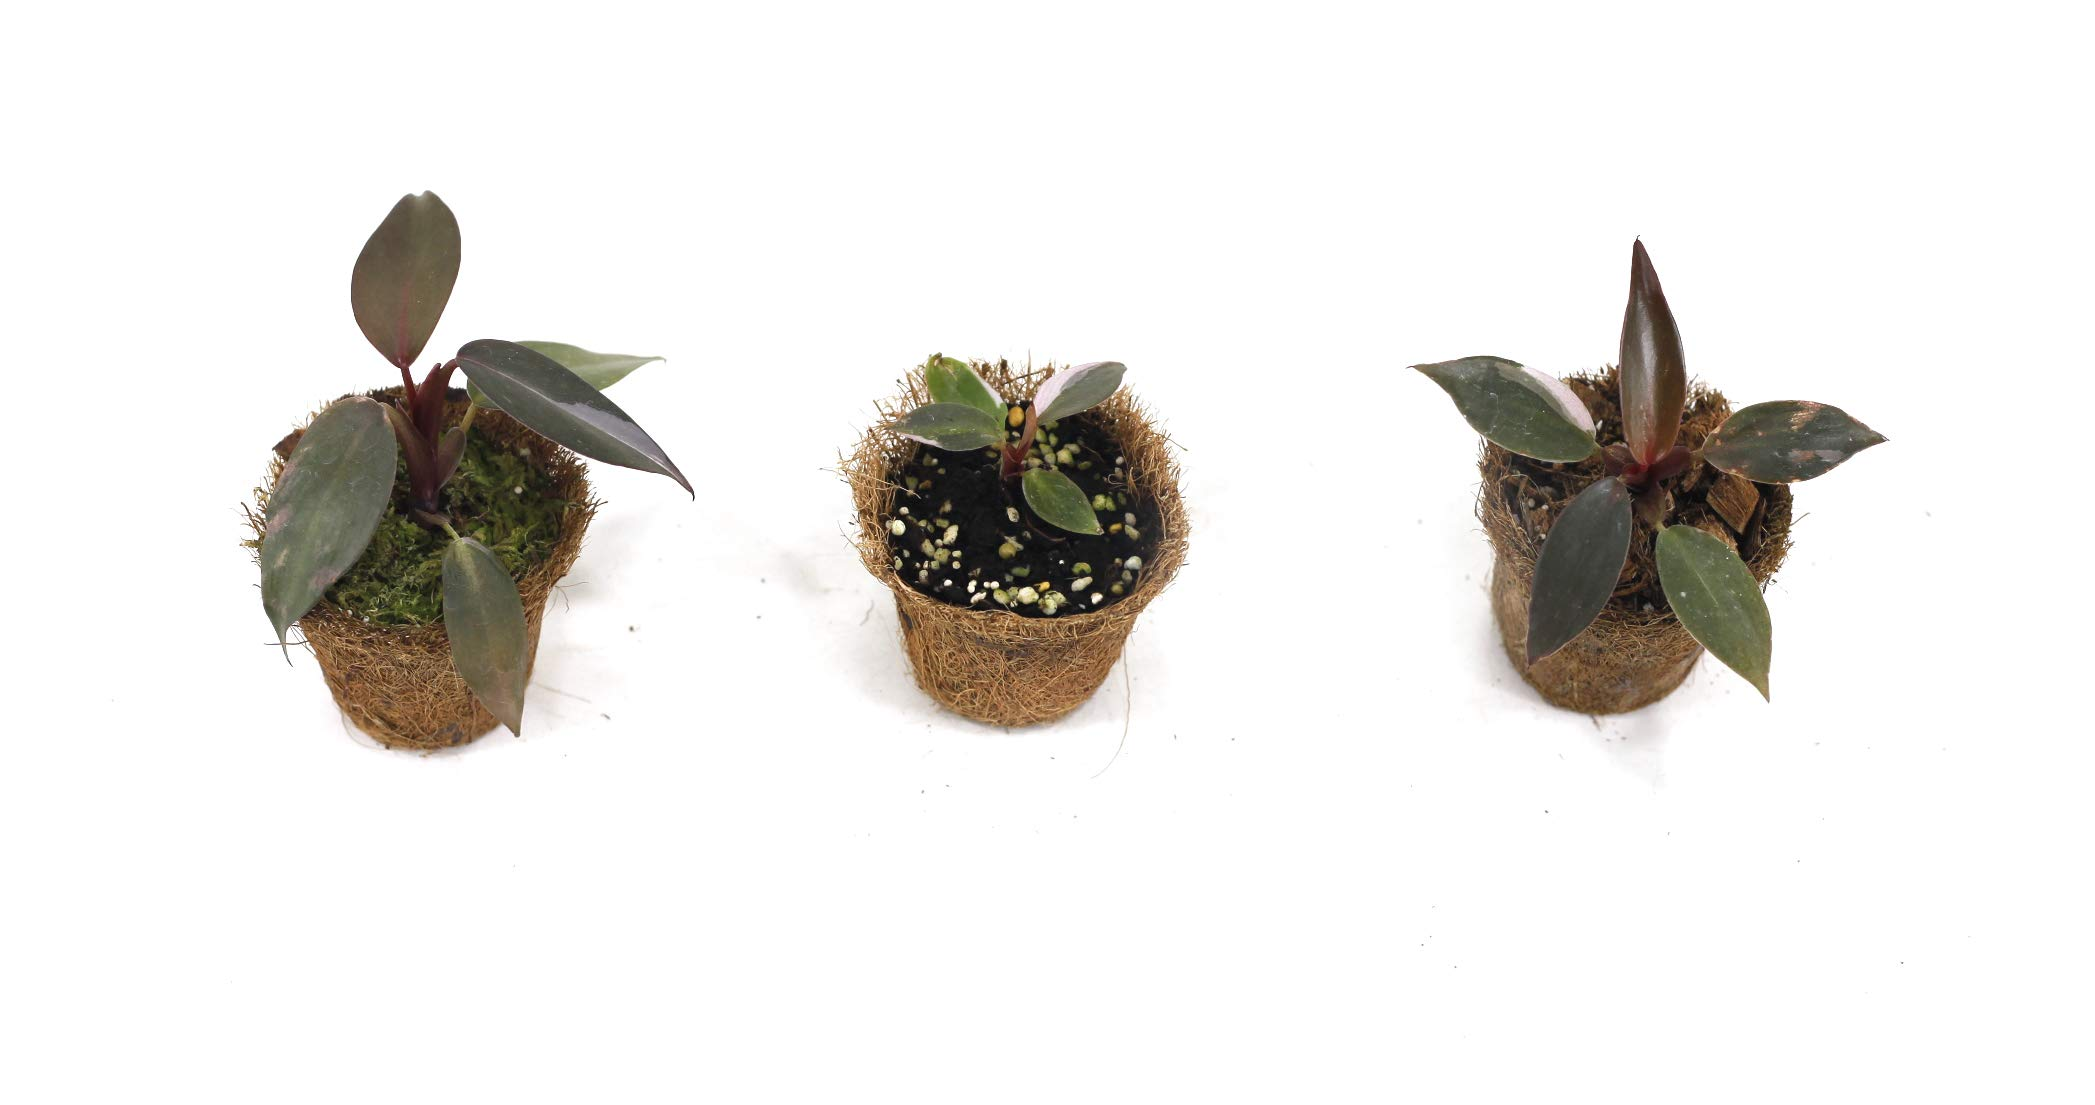 Philodendron Pink Princess Young Plant Trio Set by Joinflower Joinfolia (Image #2)